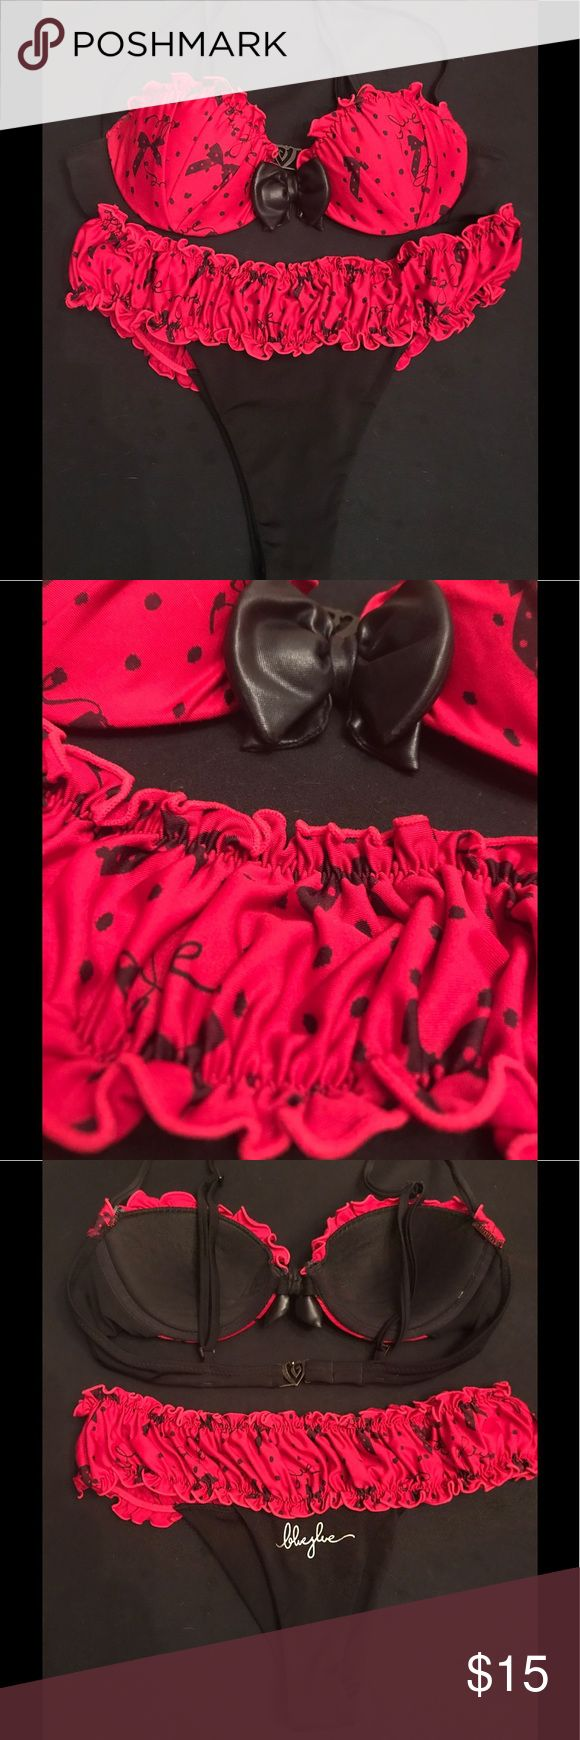 Blue Glue Adorable Red & Black Bikini How freaking cute is this?!?!? Red and black polka dots with little bows adorn this ruffled, girlie, sea-side Oh My Goodness bikini.  Ruffled bottoms are Uber-comfy and will show off your tushy and flatter your bottom!  Top is scalloped and padded with adjustable straps and cute little ruffles along your ta-tas.  You must! Blue Glue Swim Bikinis